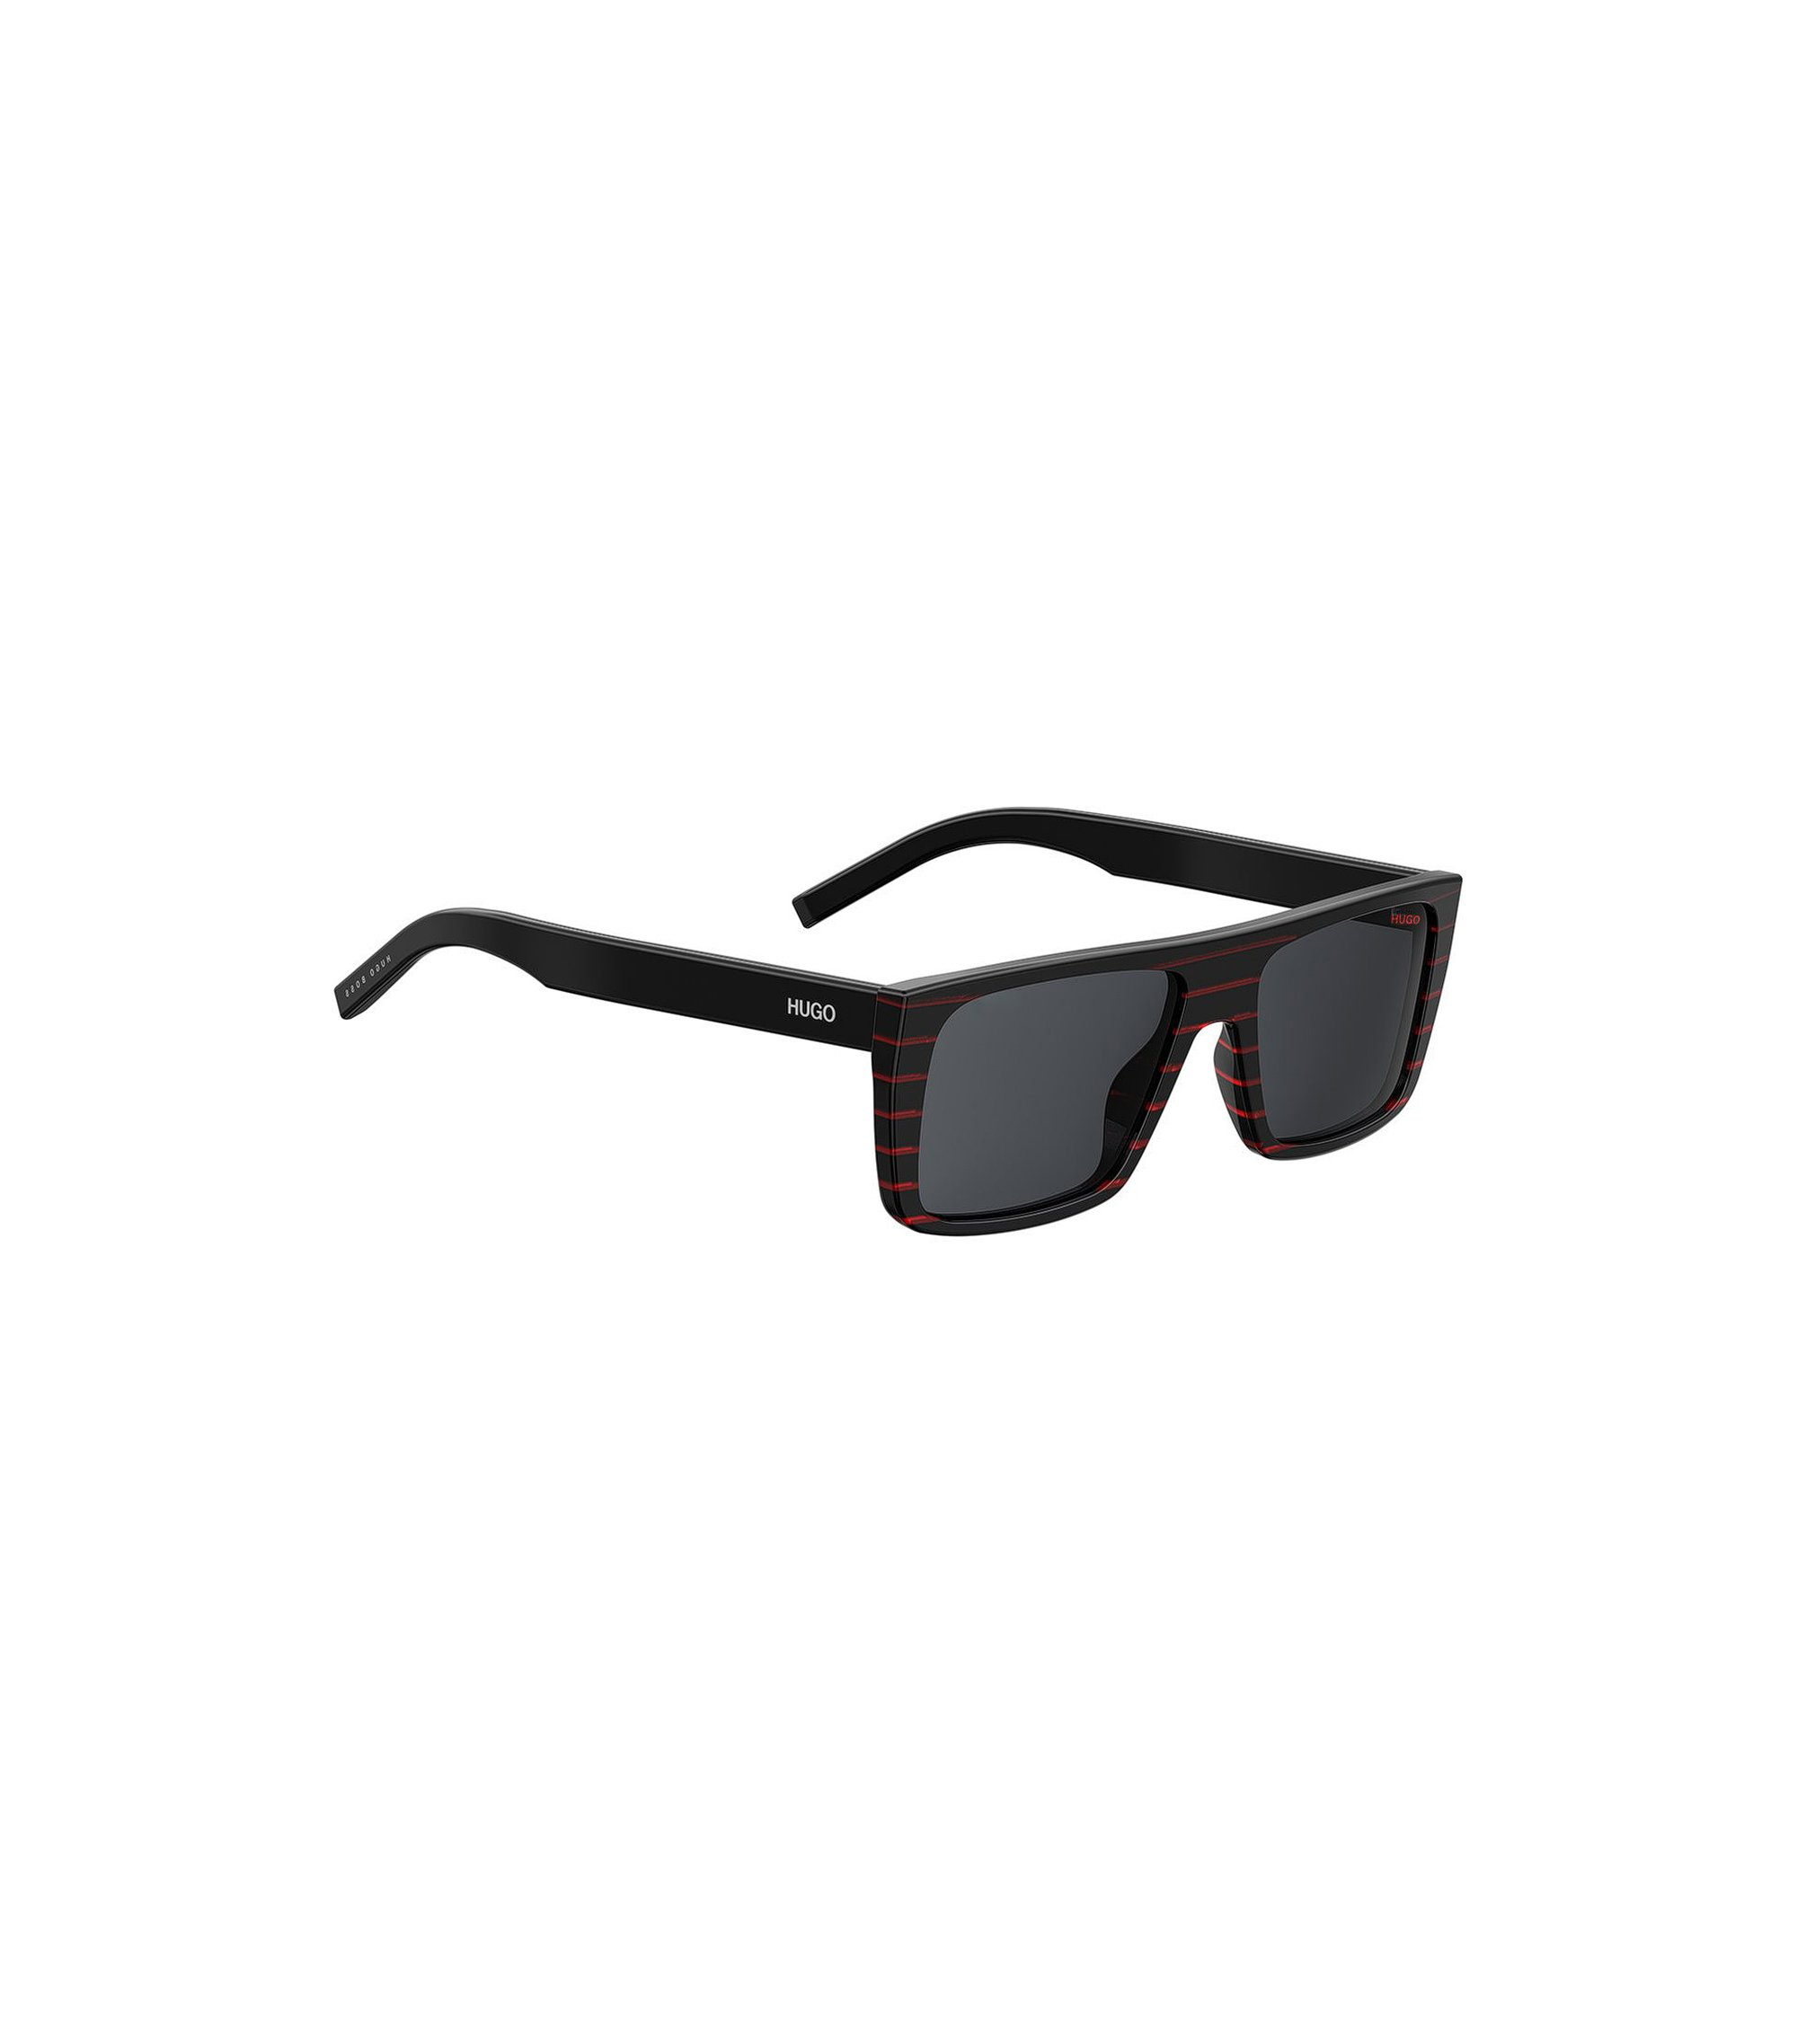 Squared sunglasses in red and black striped acetate, Black